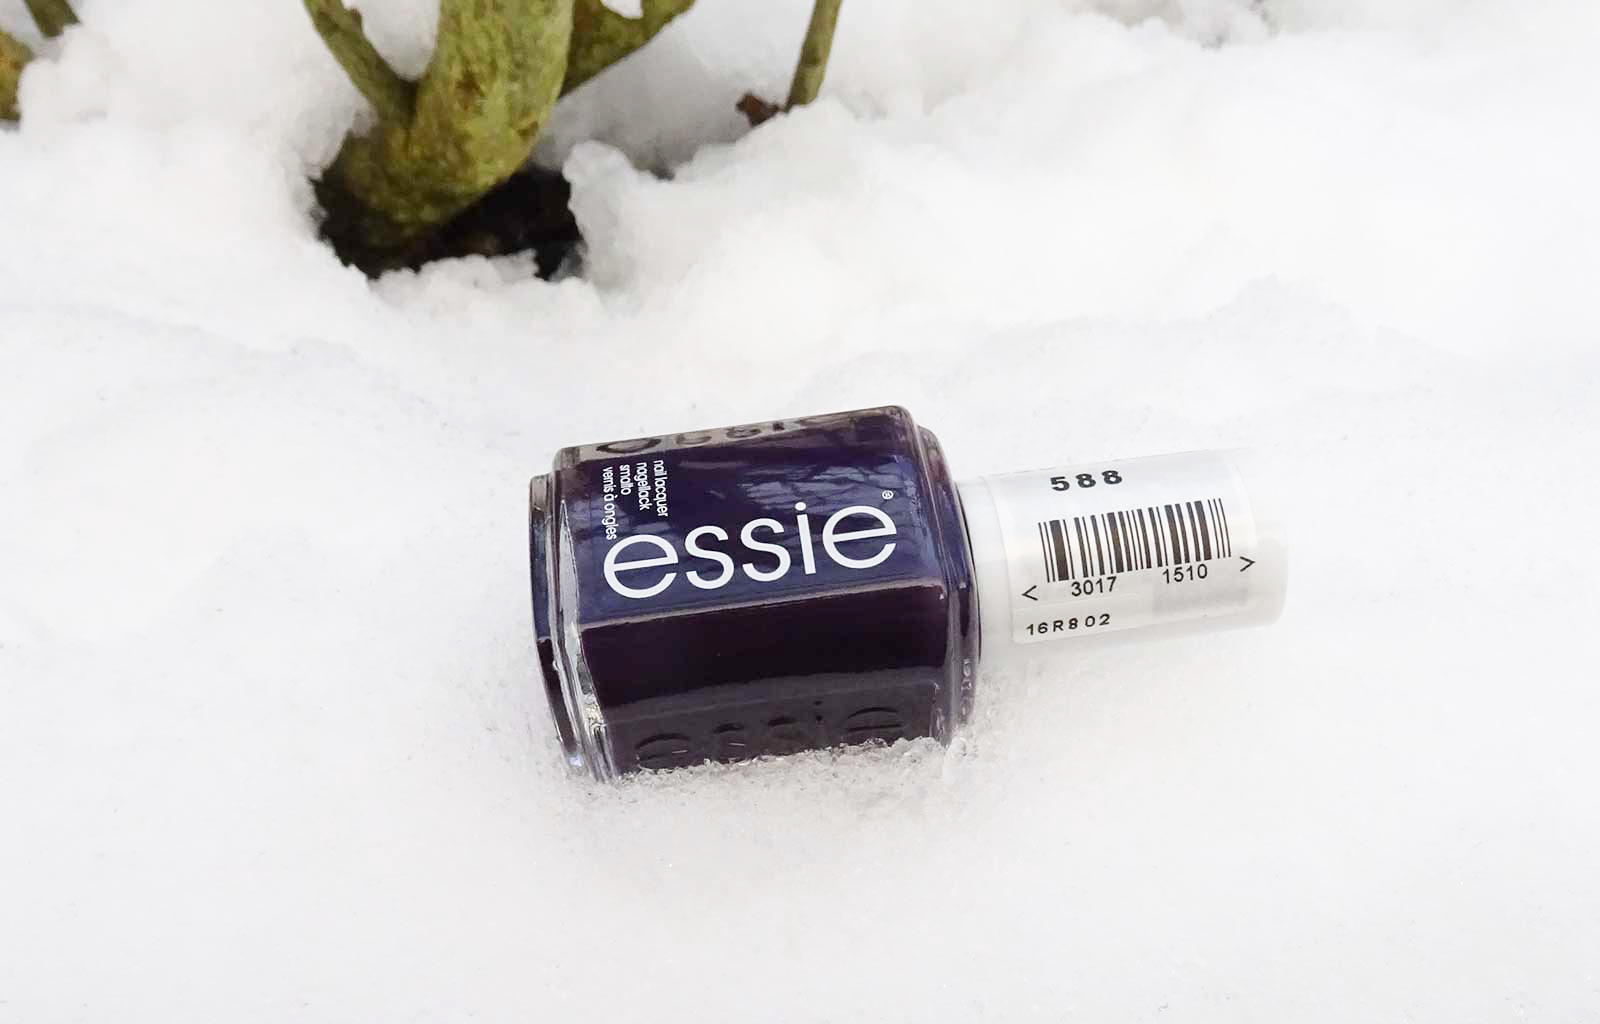 Essie collection hiver 2018-2019 sights on nightlights